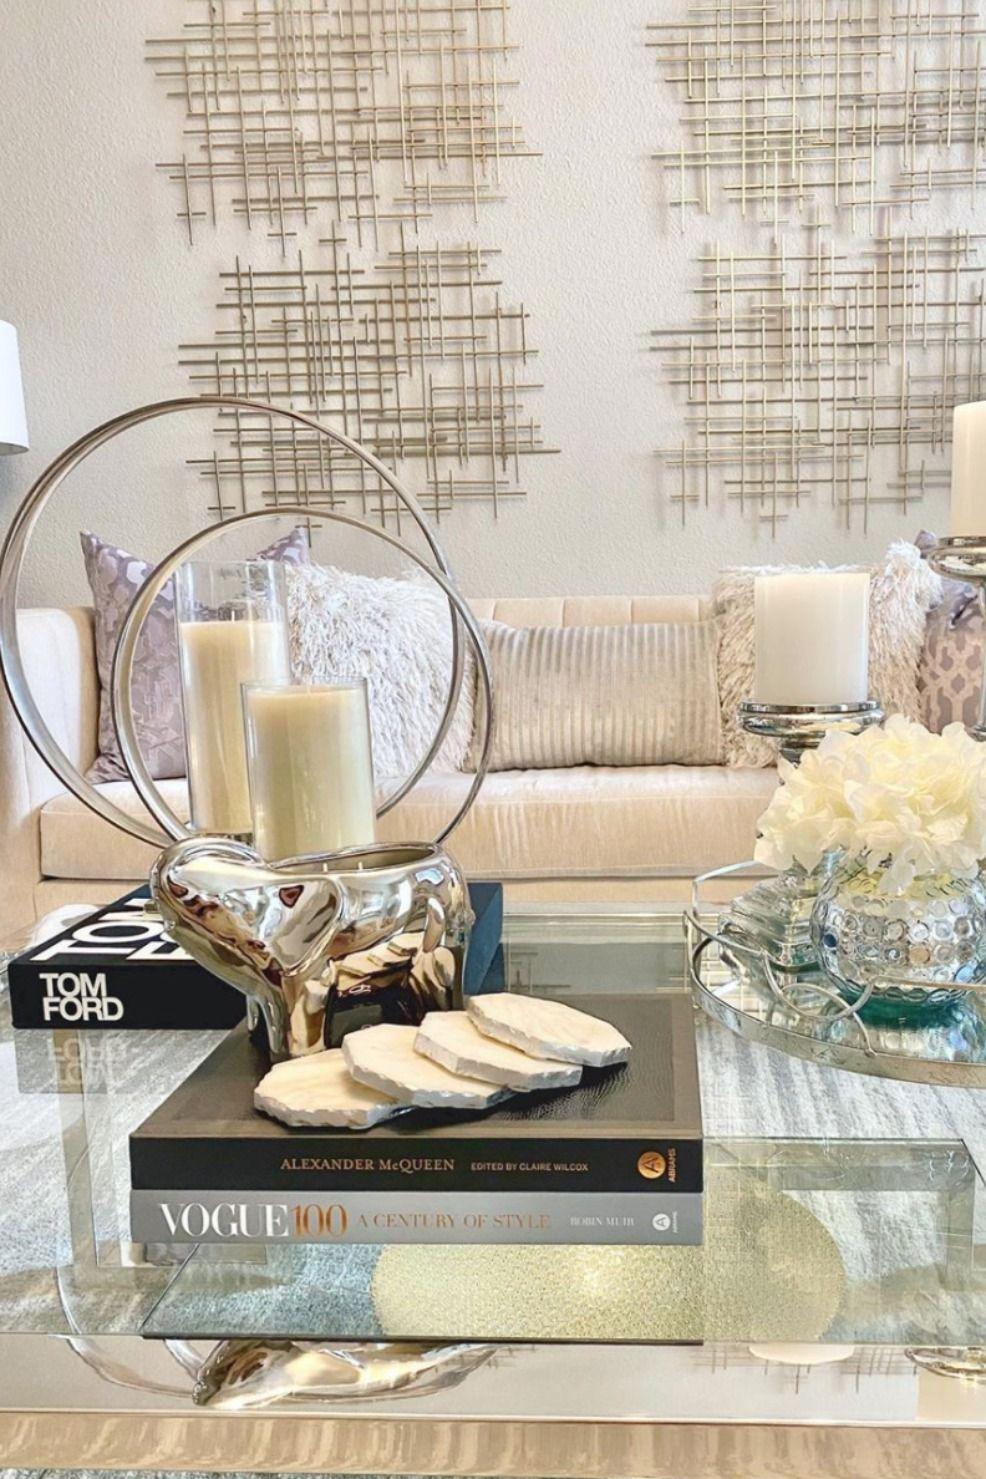 Luxury Coffee Table Styling Ideas Interior Design Thompson Ferrier Table Decor Living Room Elephant Home Decor Decorating Coffee Tables [ jpg ]